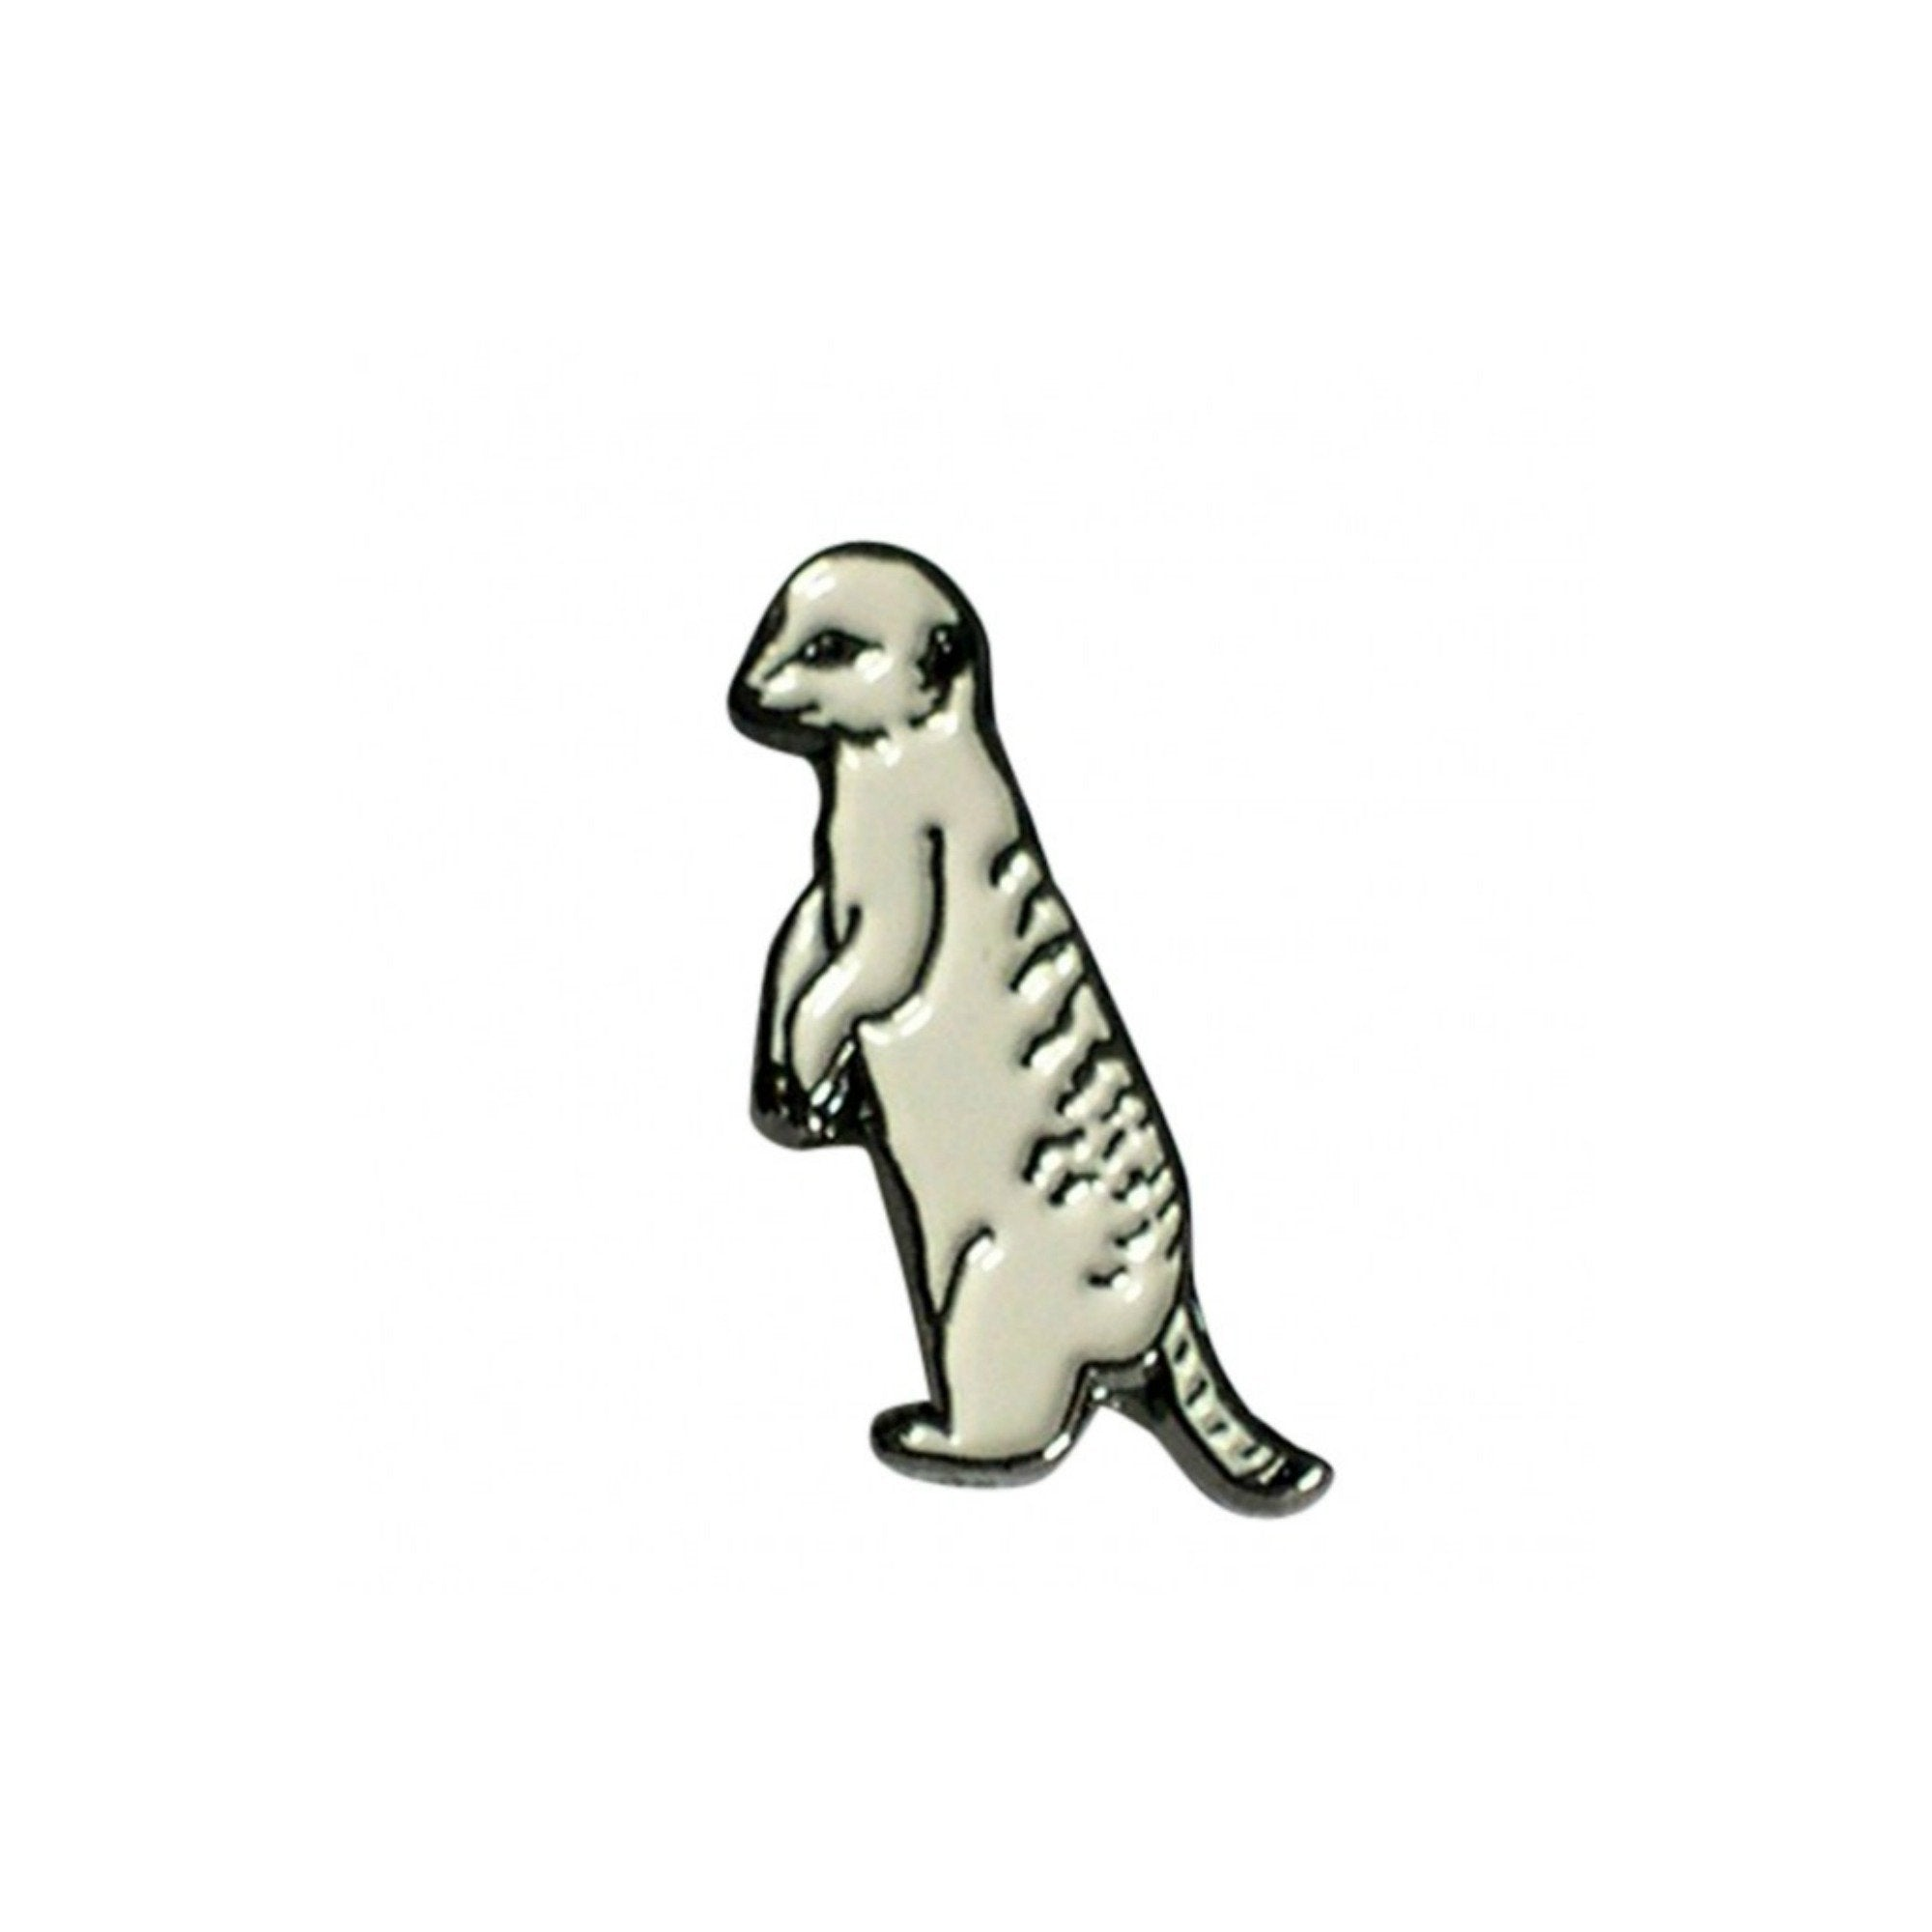 Meerkat Enamel Lapel Pin Badge - Minimum Mouse